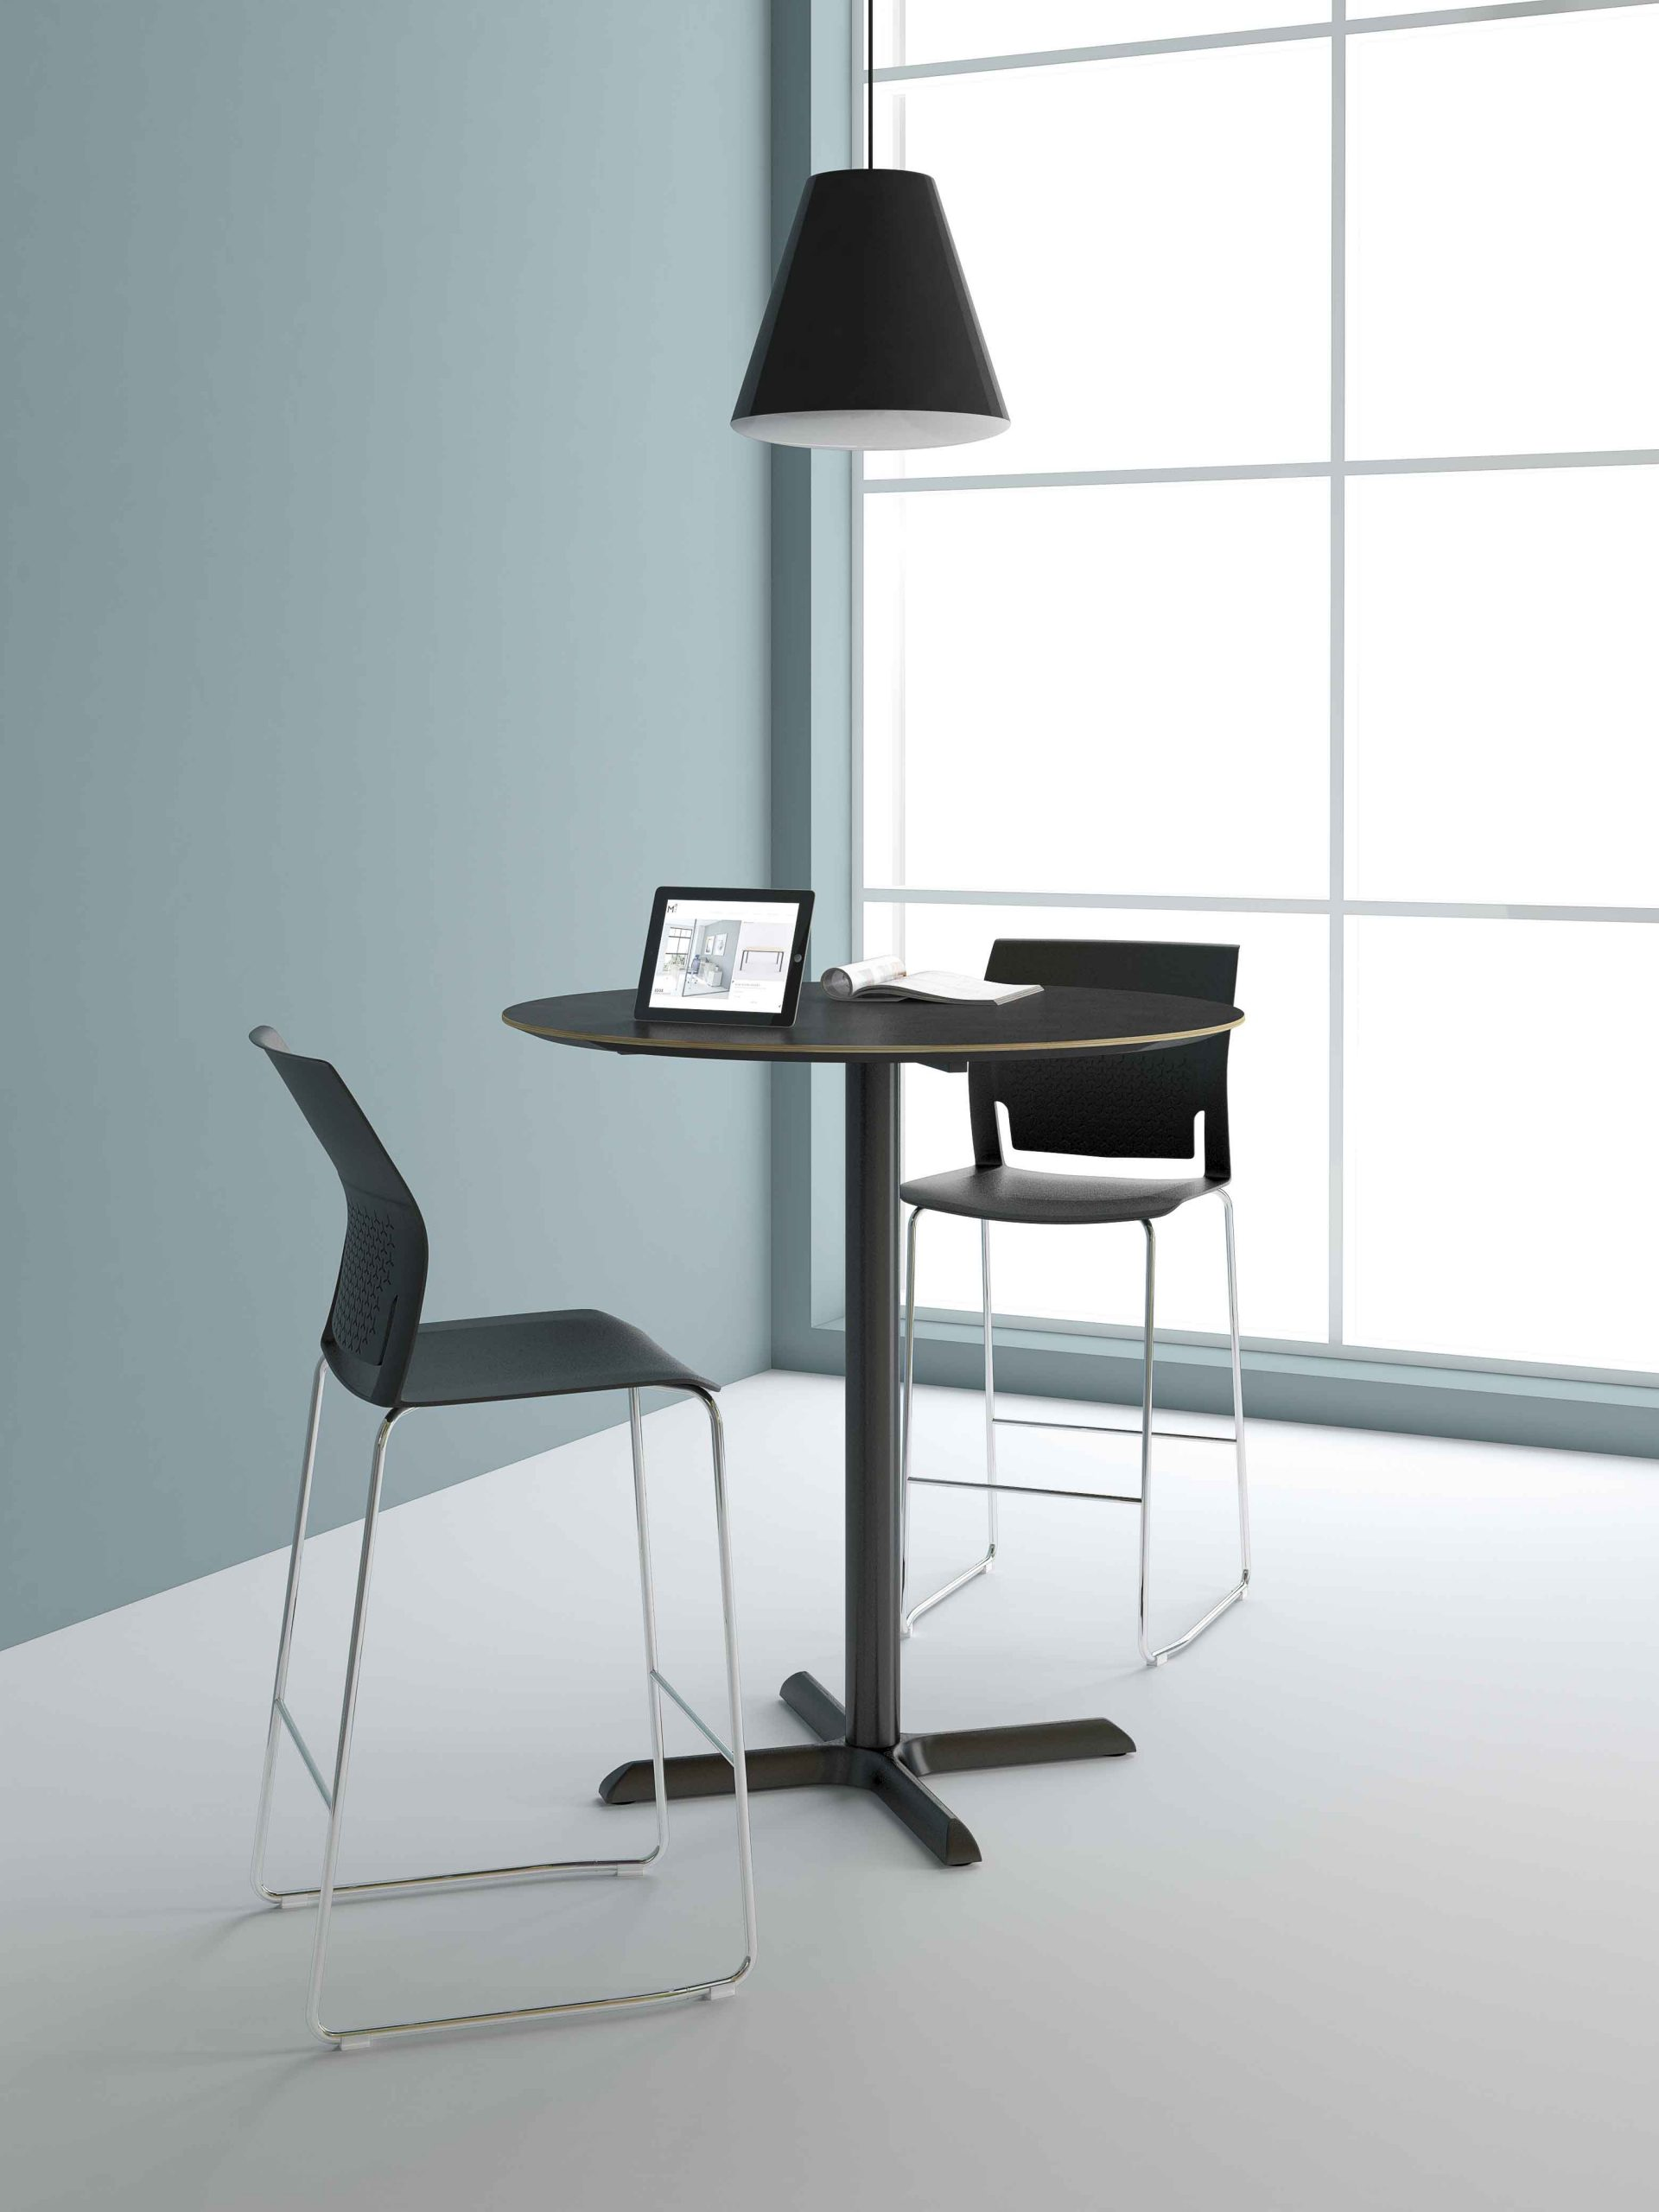 Matic Degree Office Furniture Gallery